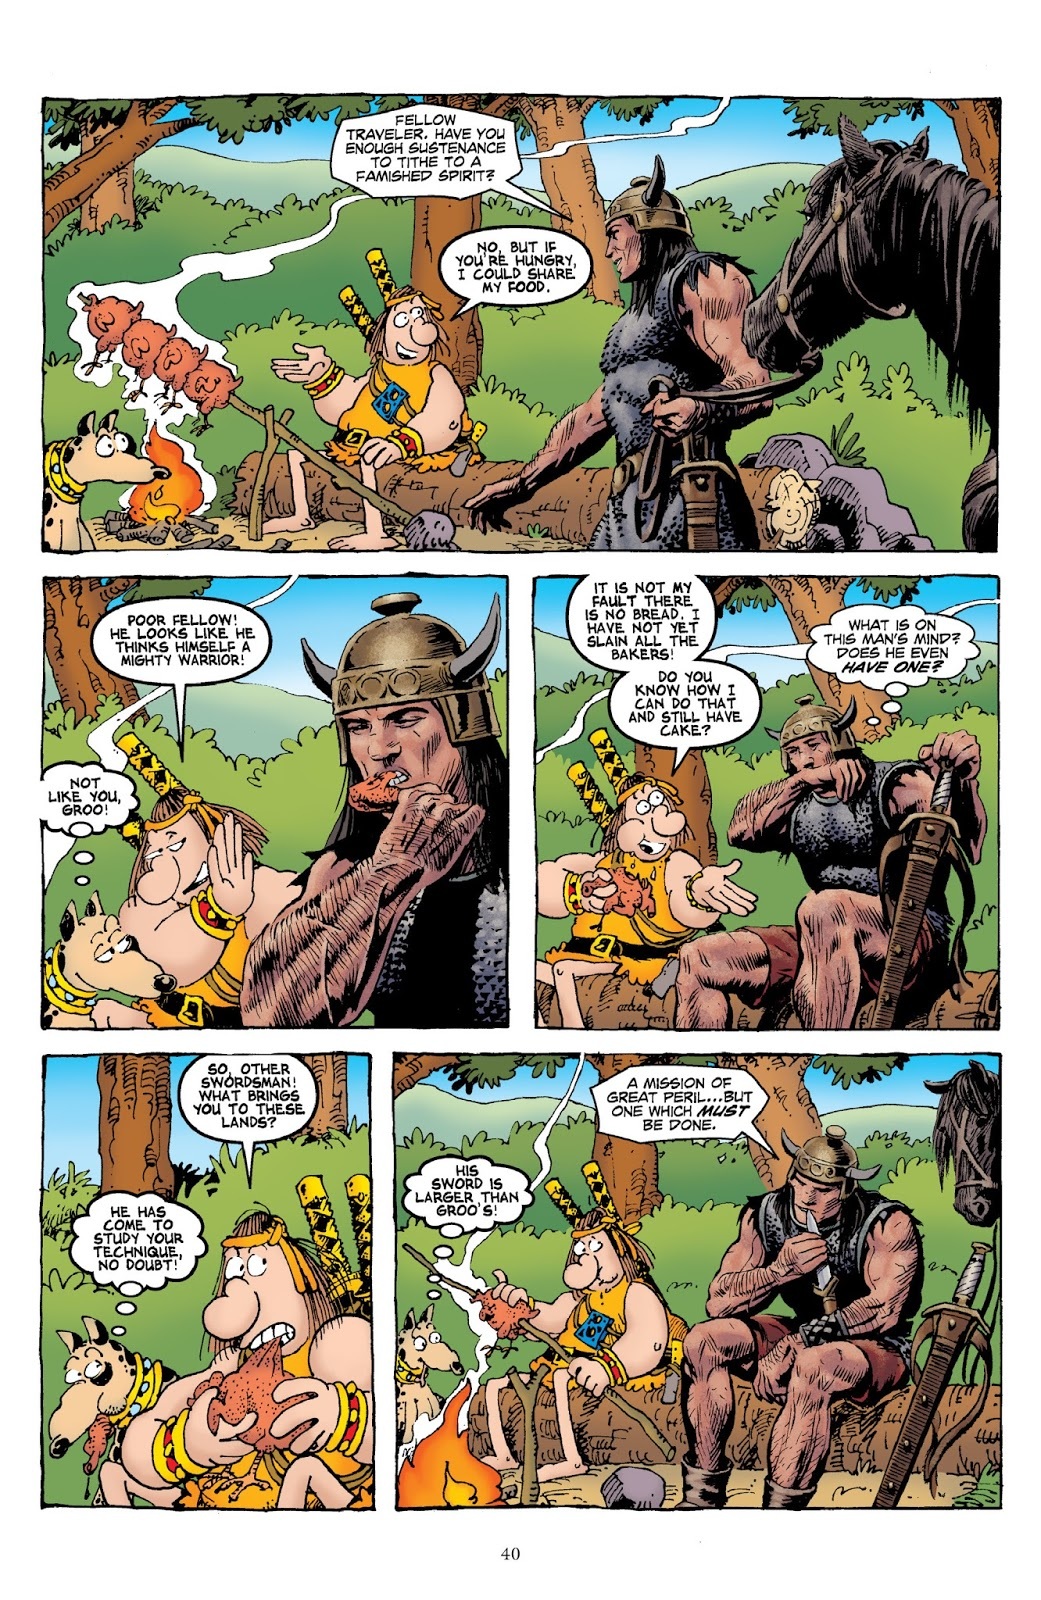 Groo vs Conan review